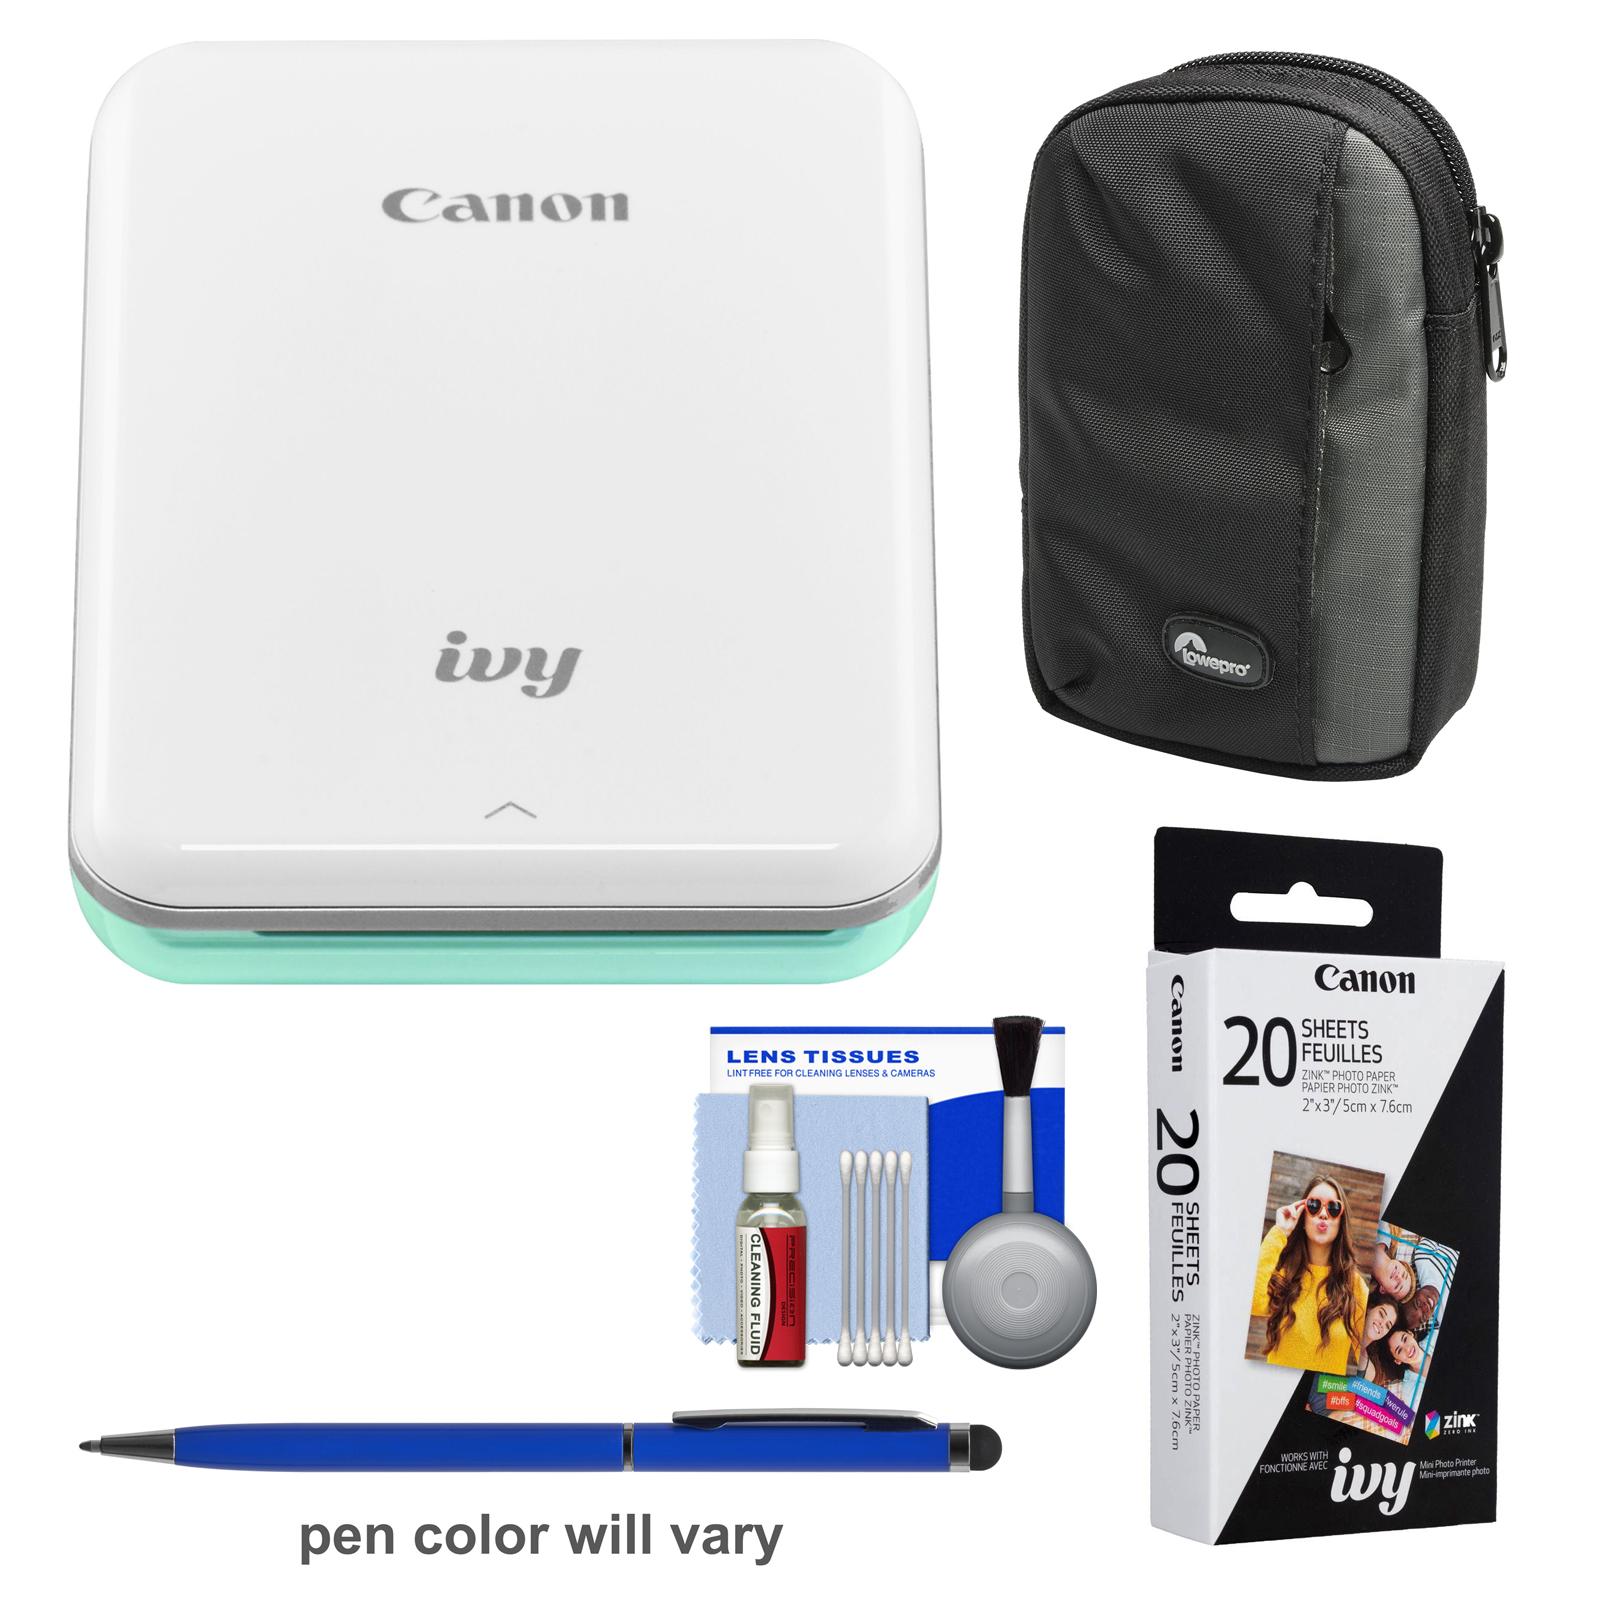 Canon IVY Wireless Bluetooth Mini Photo Printer (Mint Green) with 20 ZINK Photo Paper Pack + Case + Kit